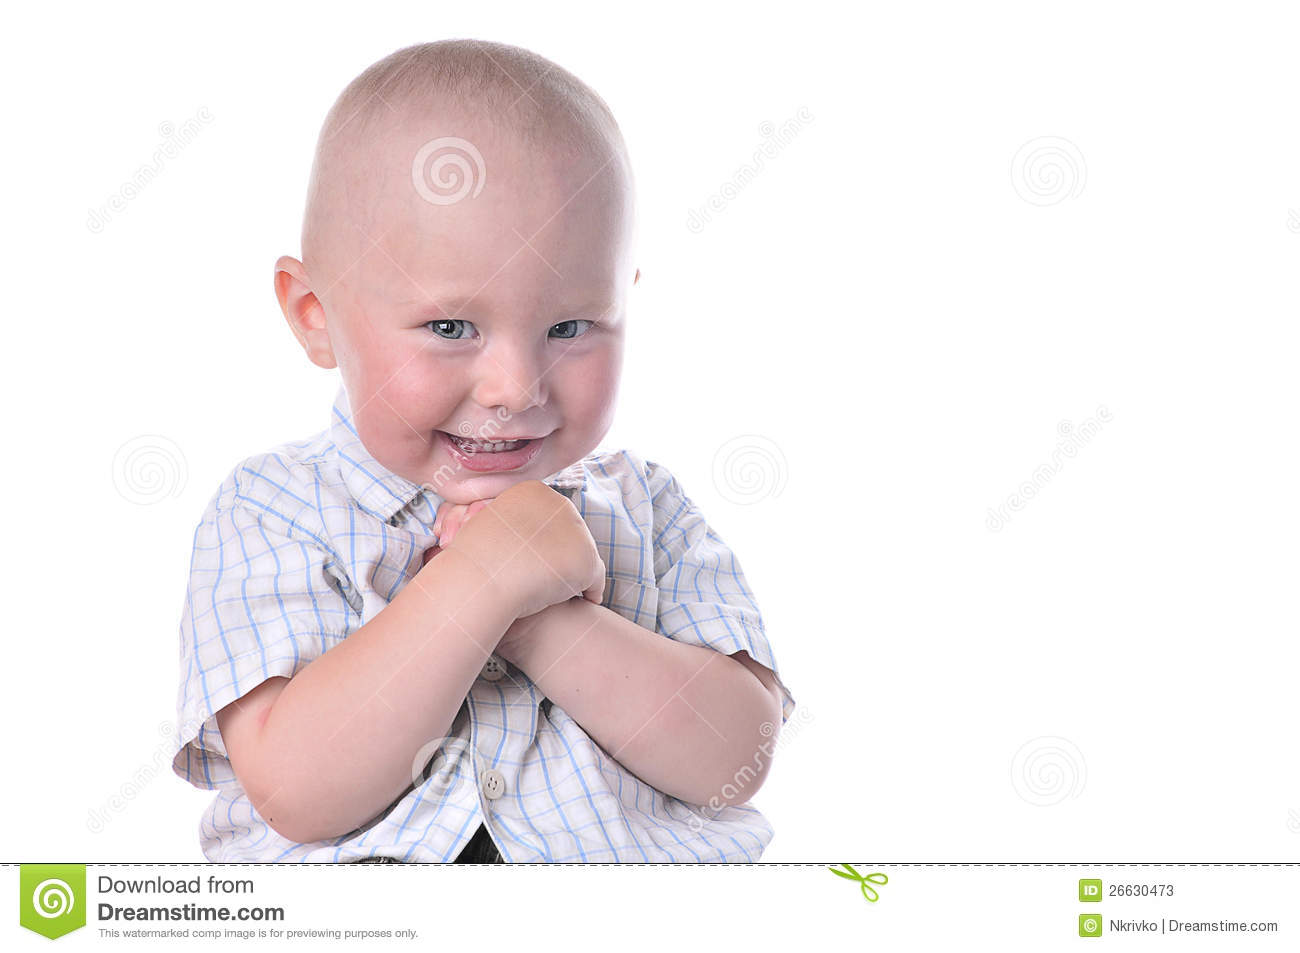 Funny Baby Smiling Stock Photos - Image: 26630473